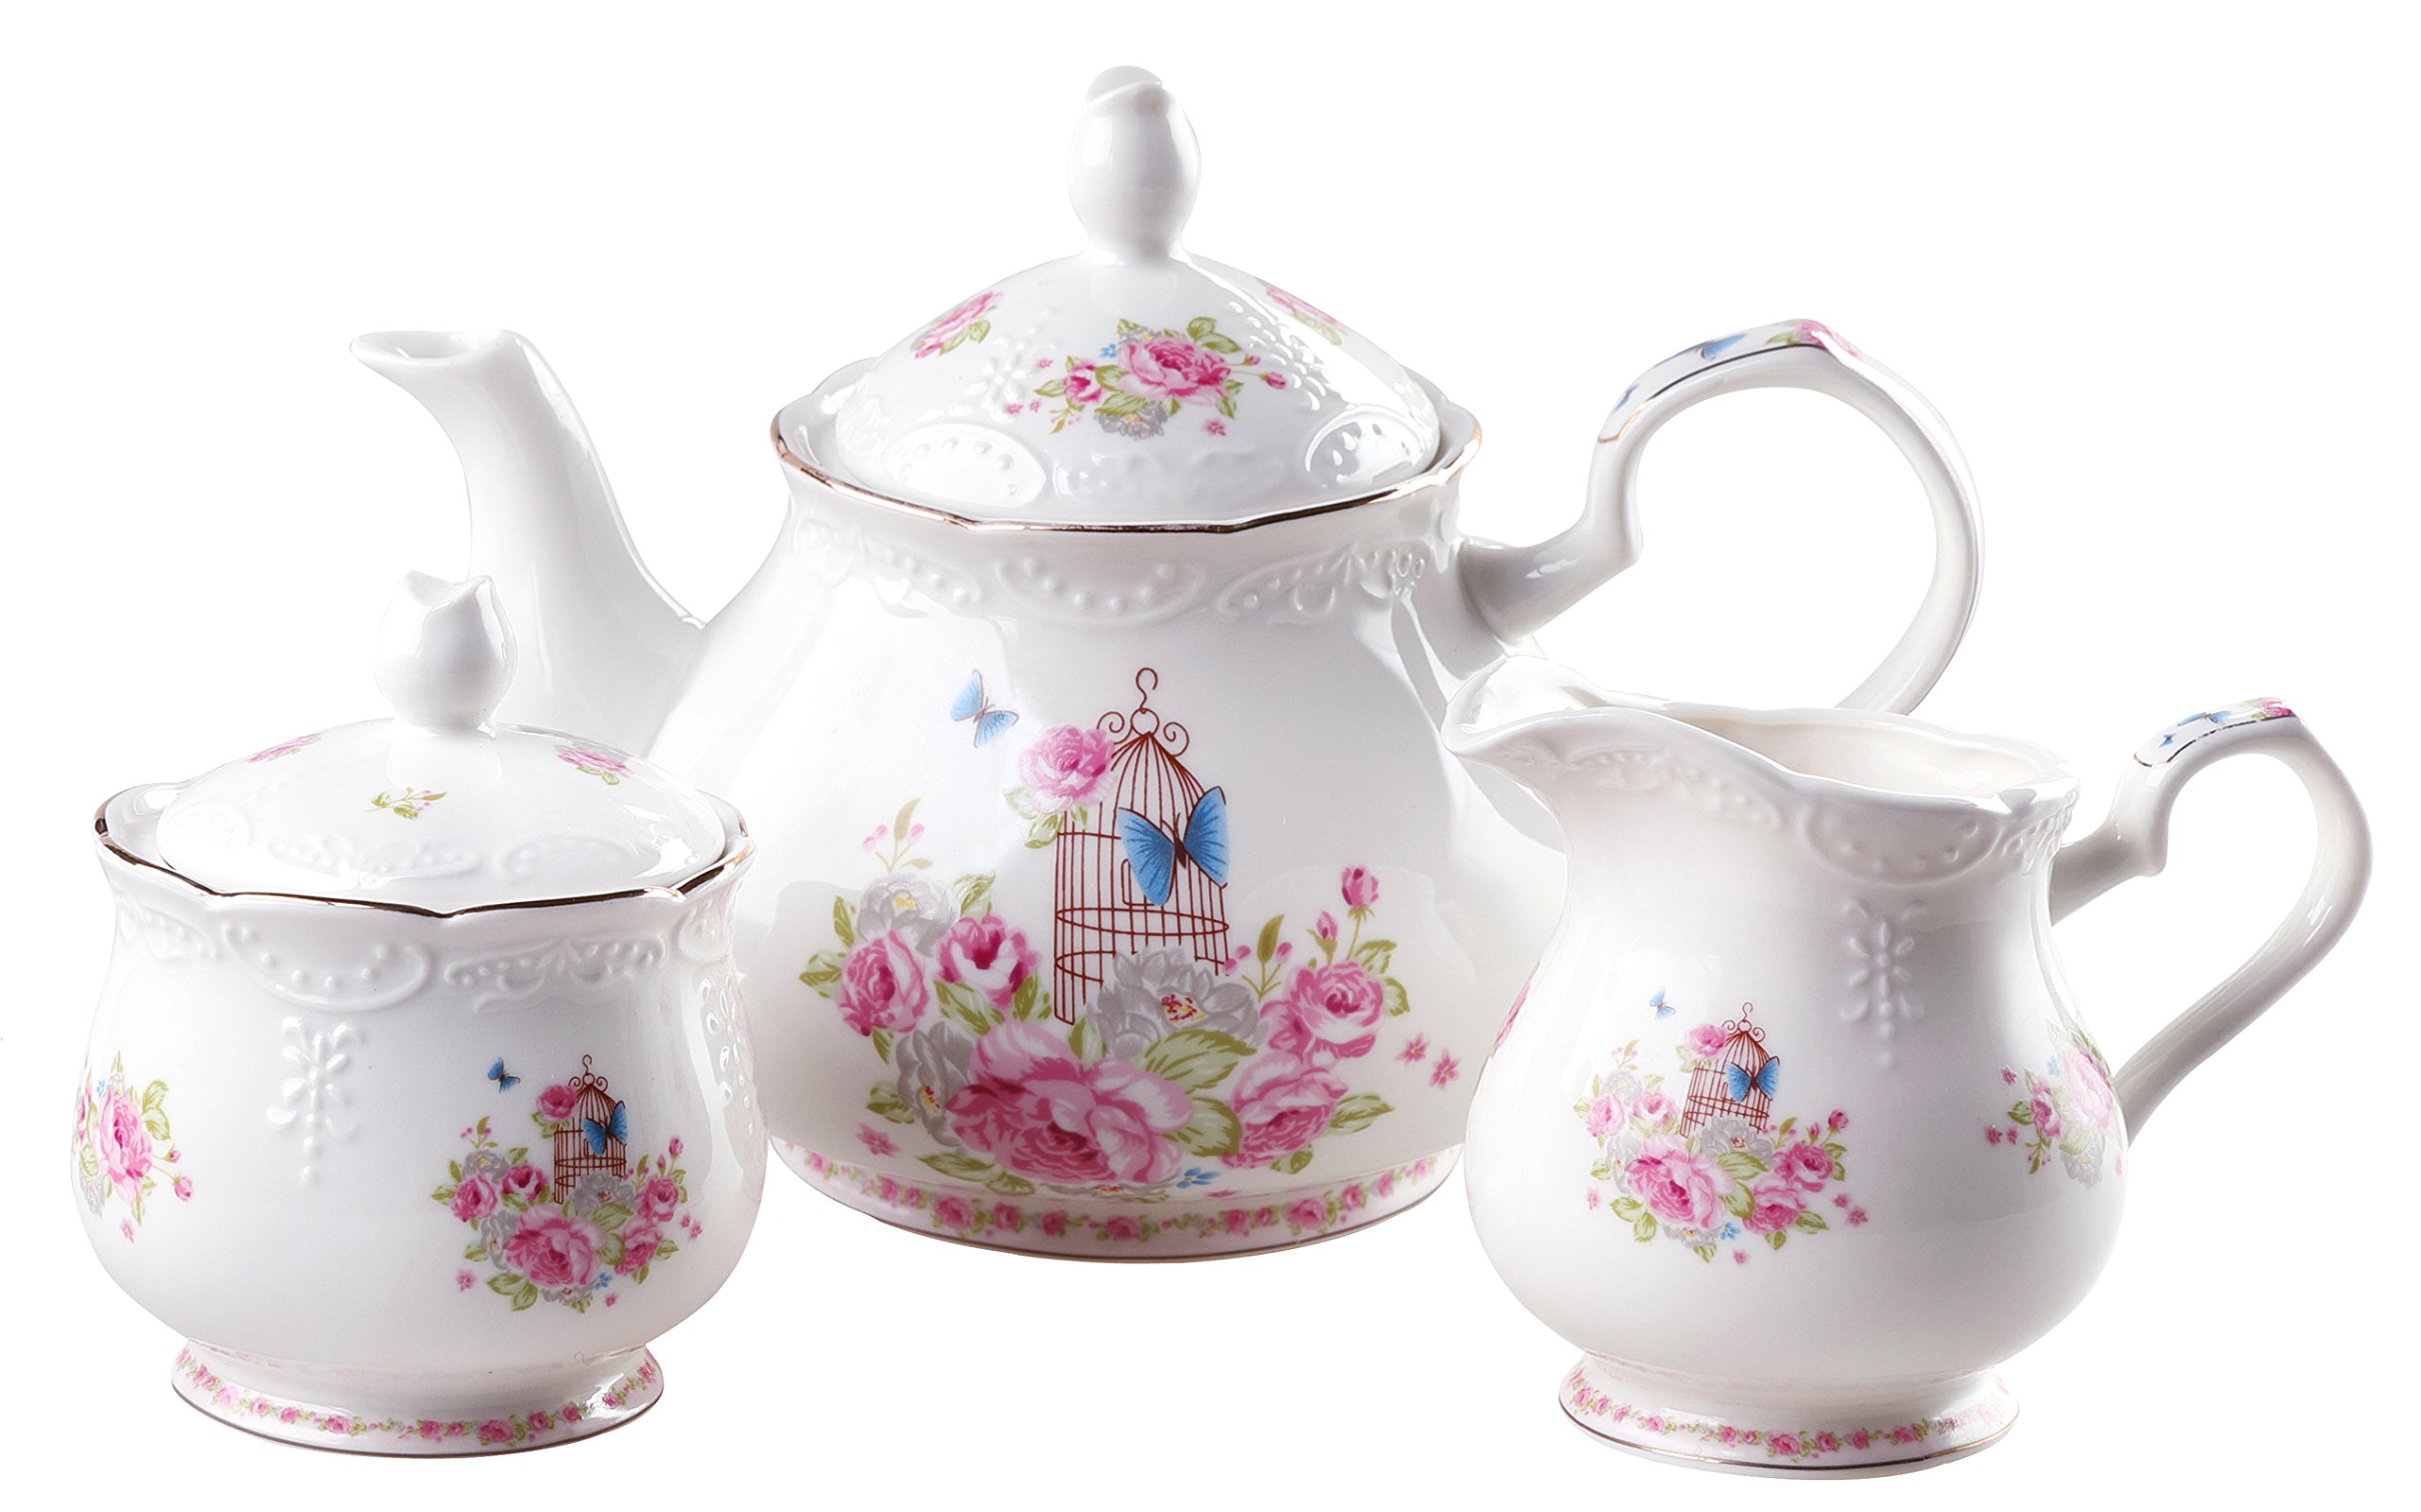 Jusalpha Fine china vintage rose teapot and creamer set (Teapot and creamer set) by Jusalpha